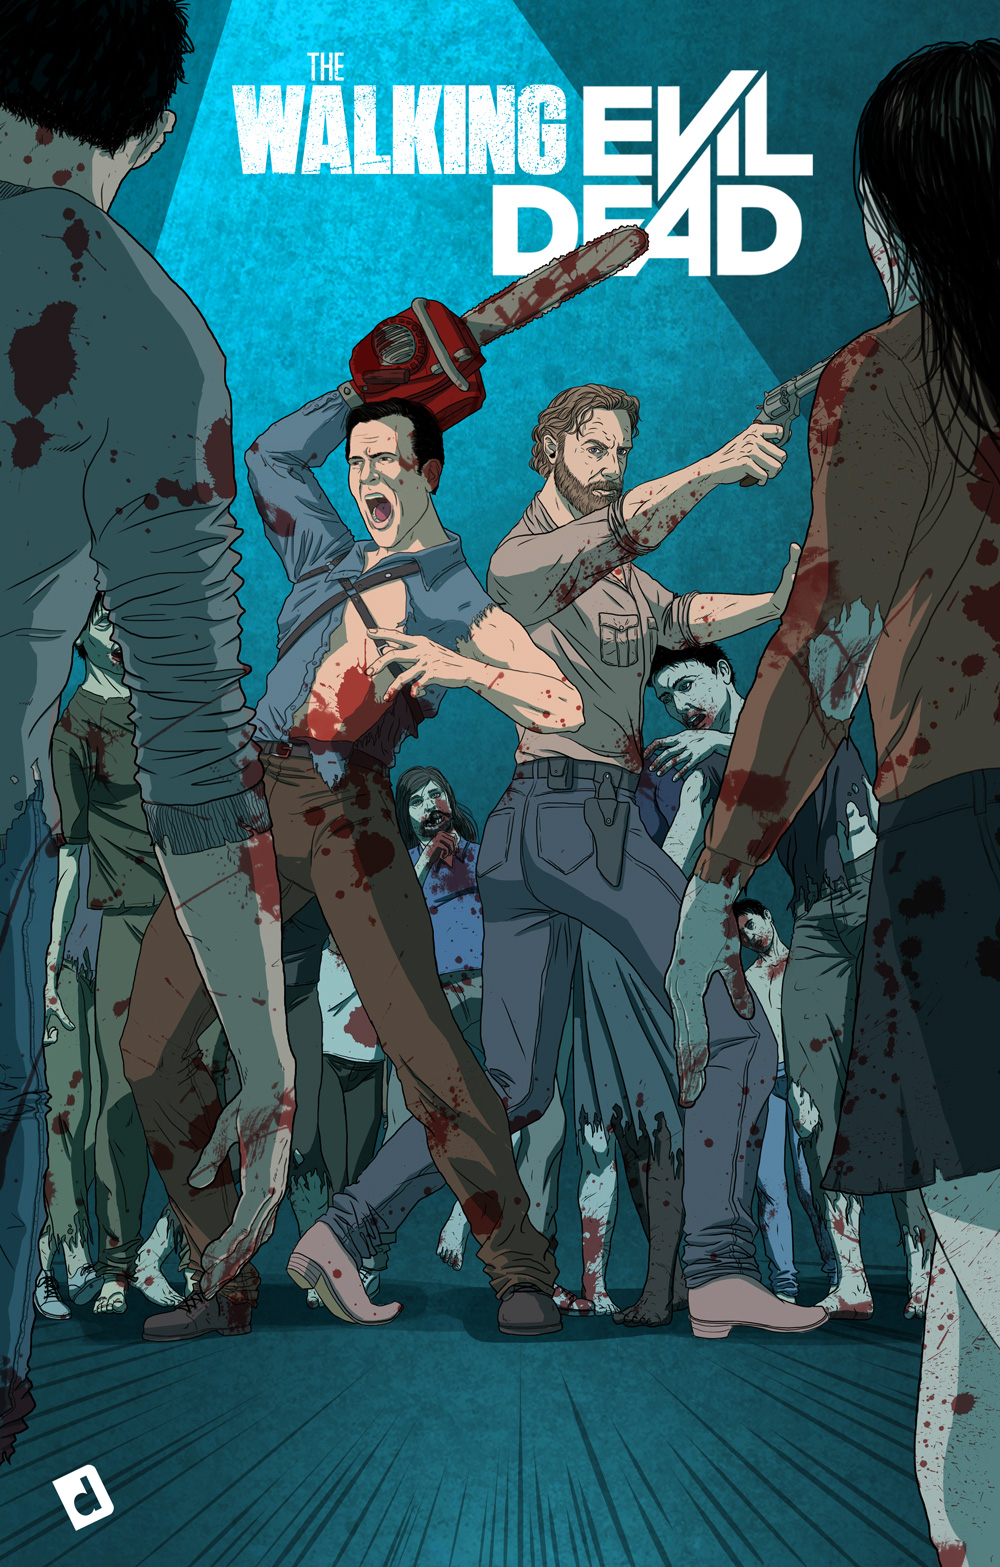 The Walking Evil Dead